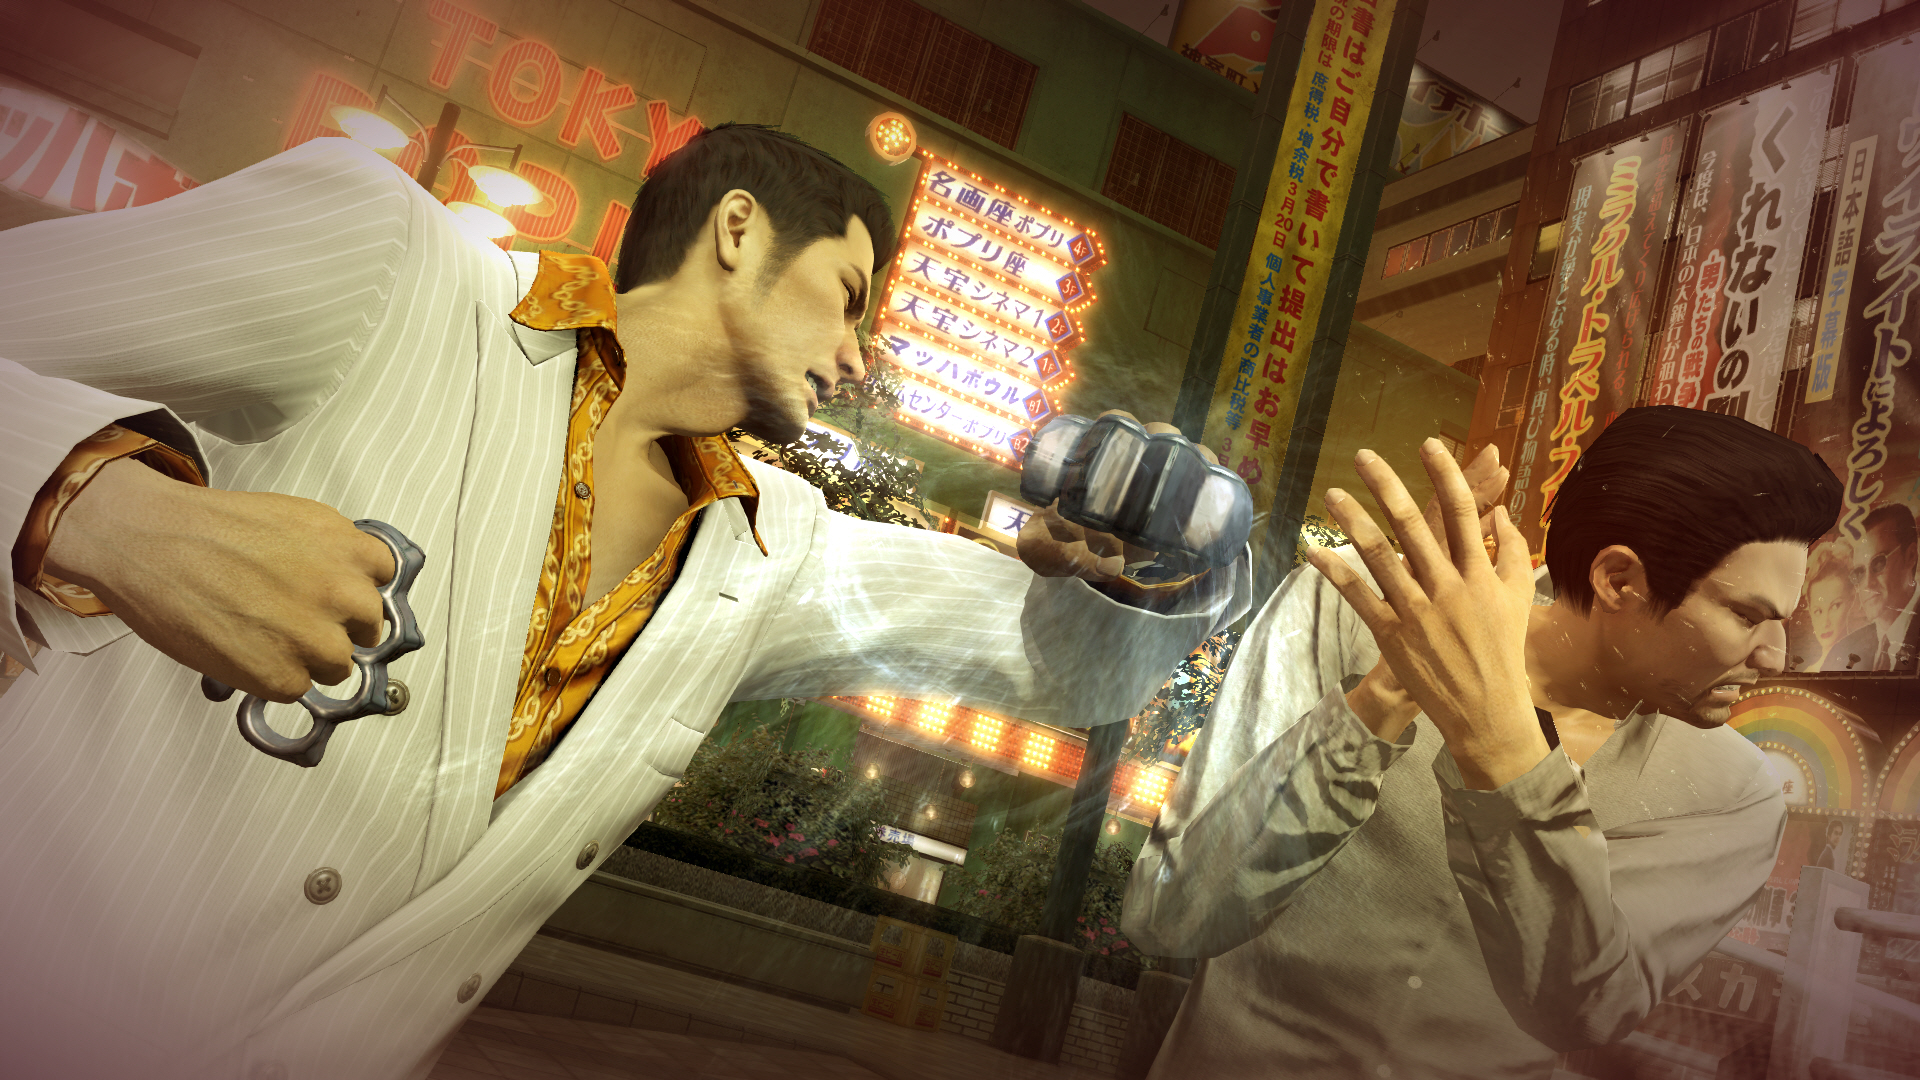 Kiryu has multiple fighting styles at his disposal to beat his enemies to a pulp.